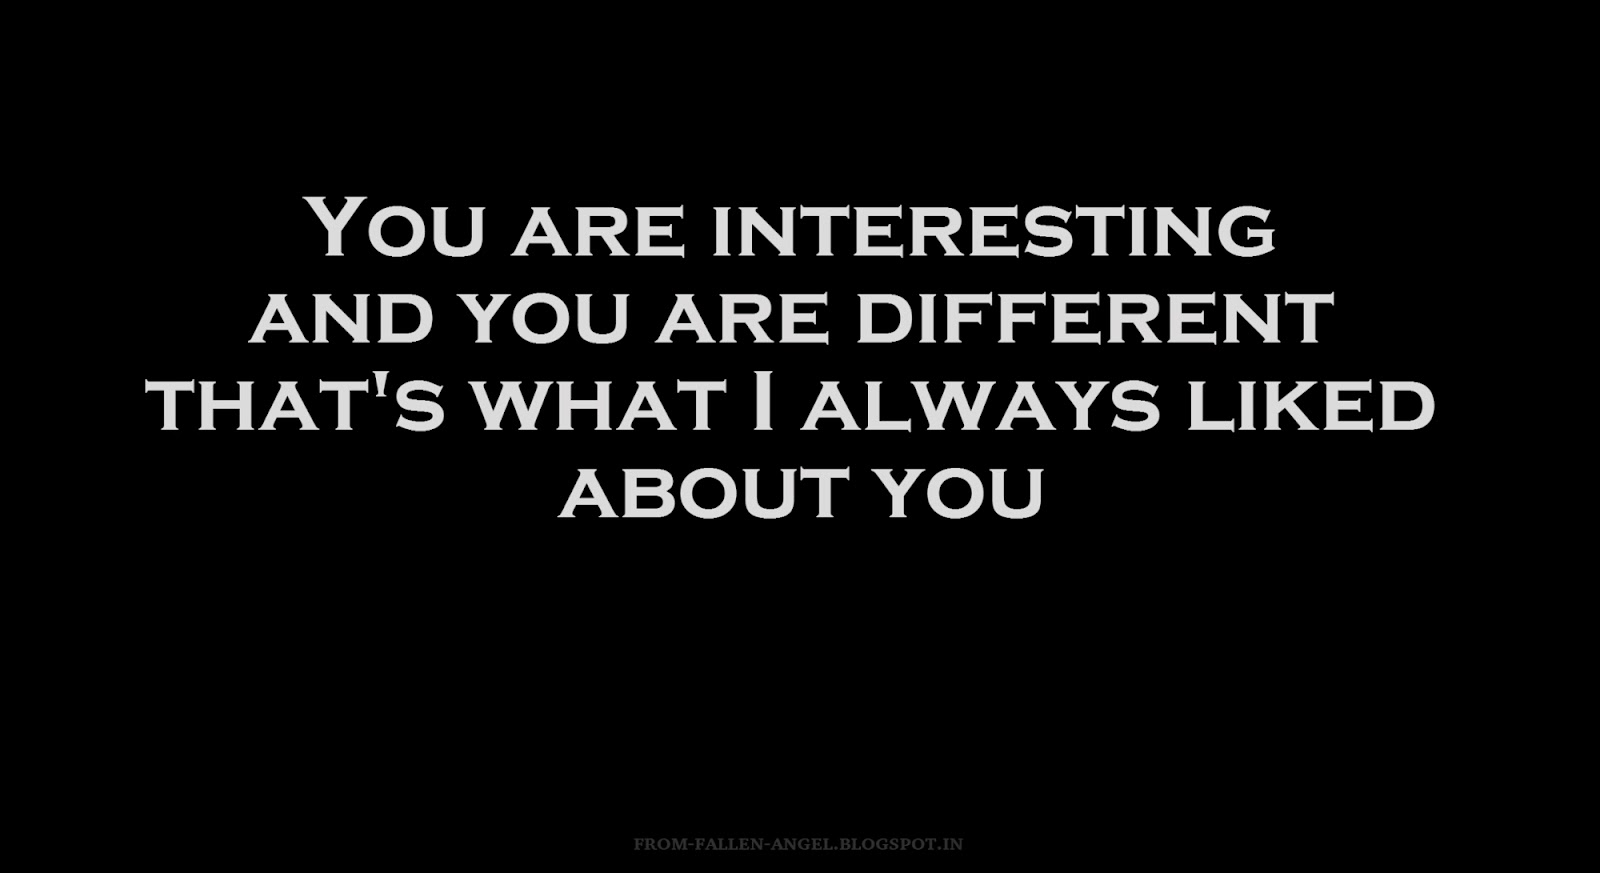 You are interesting and you are different that's what I always liked about you